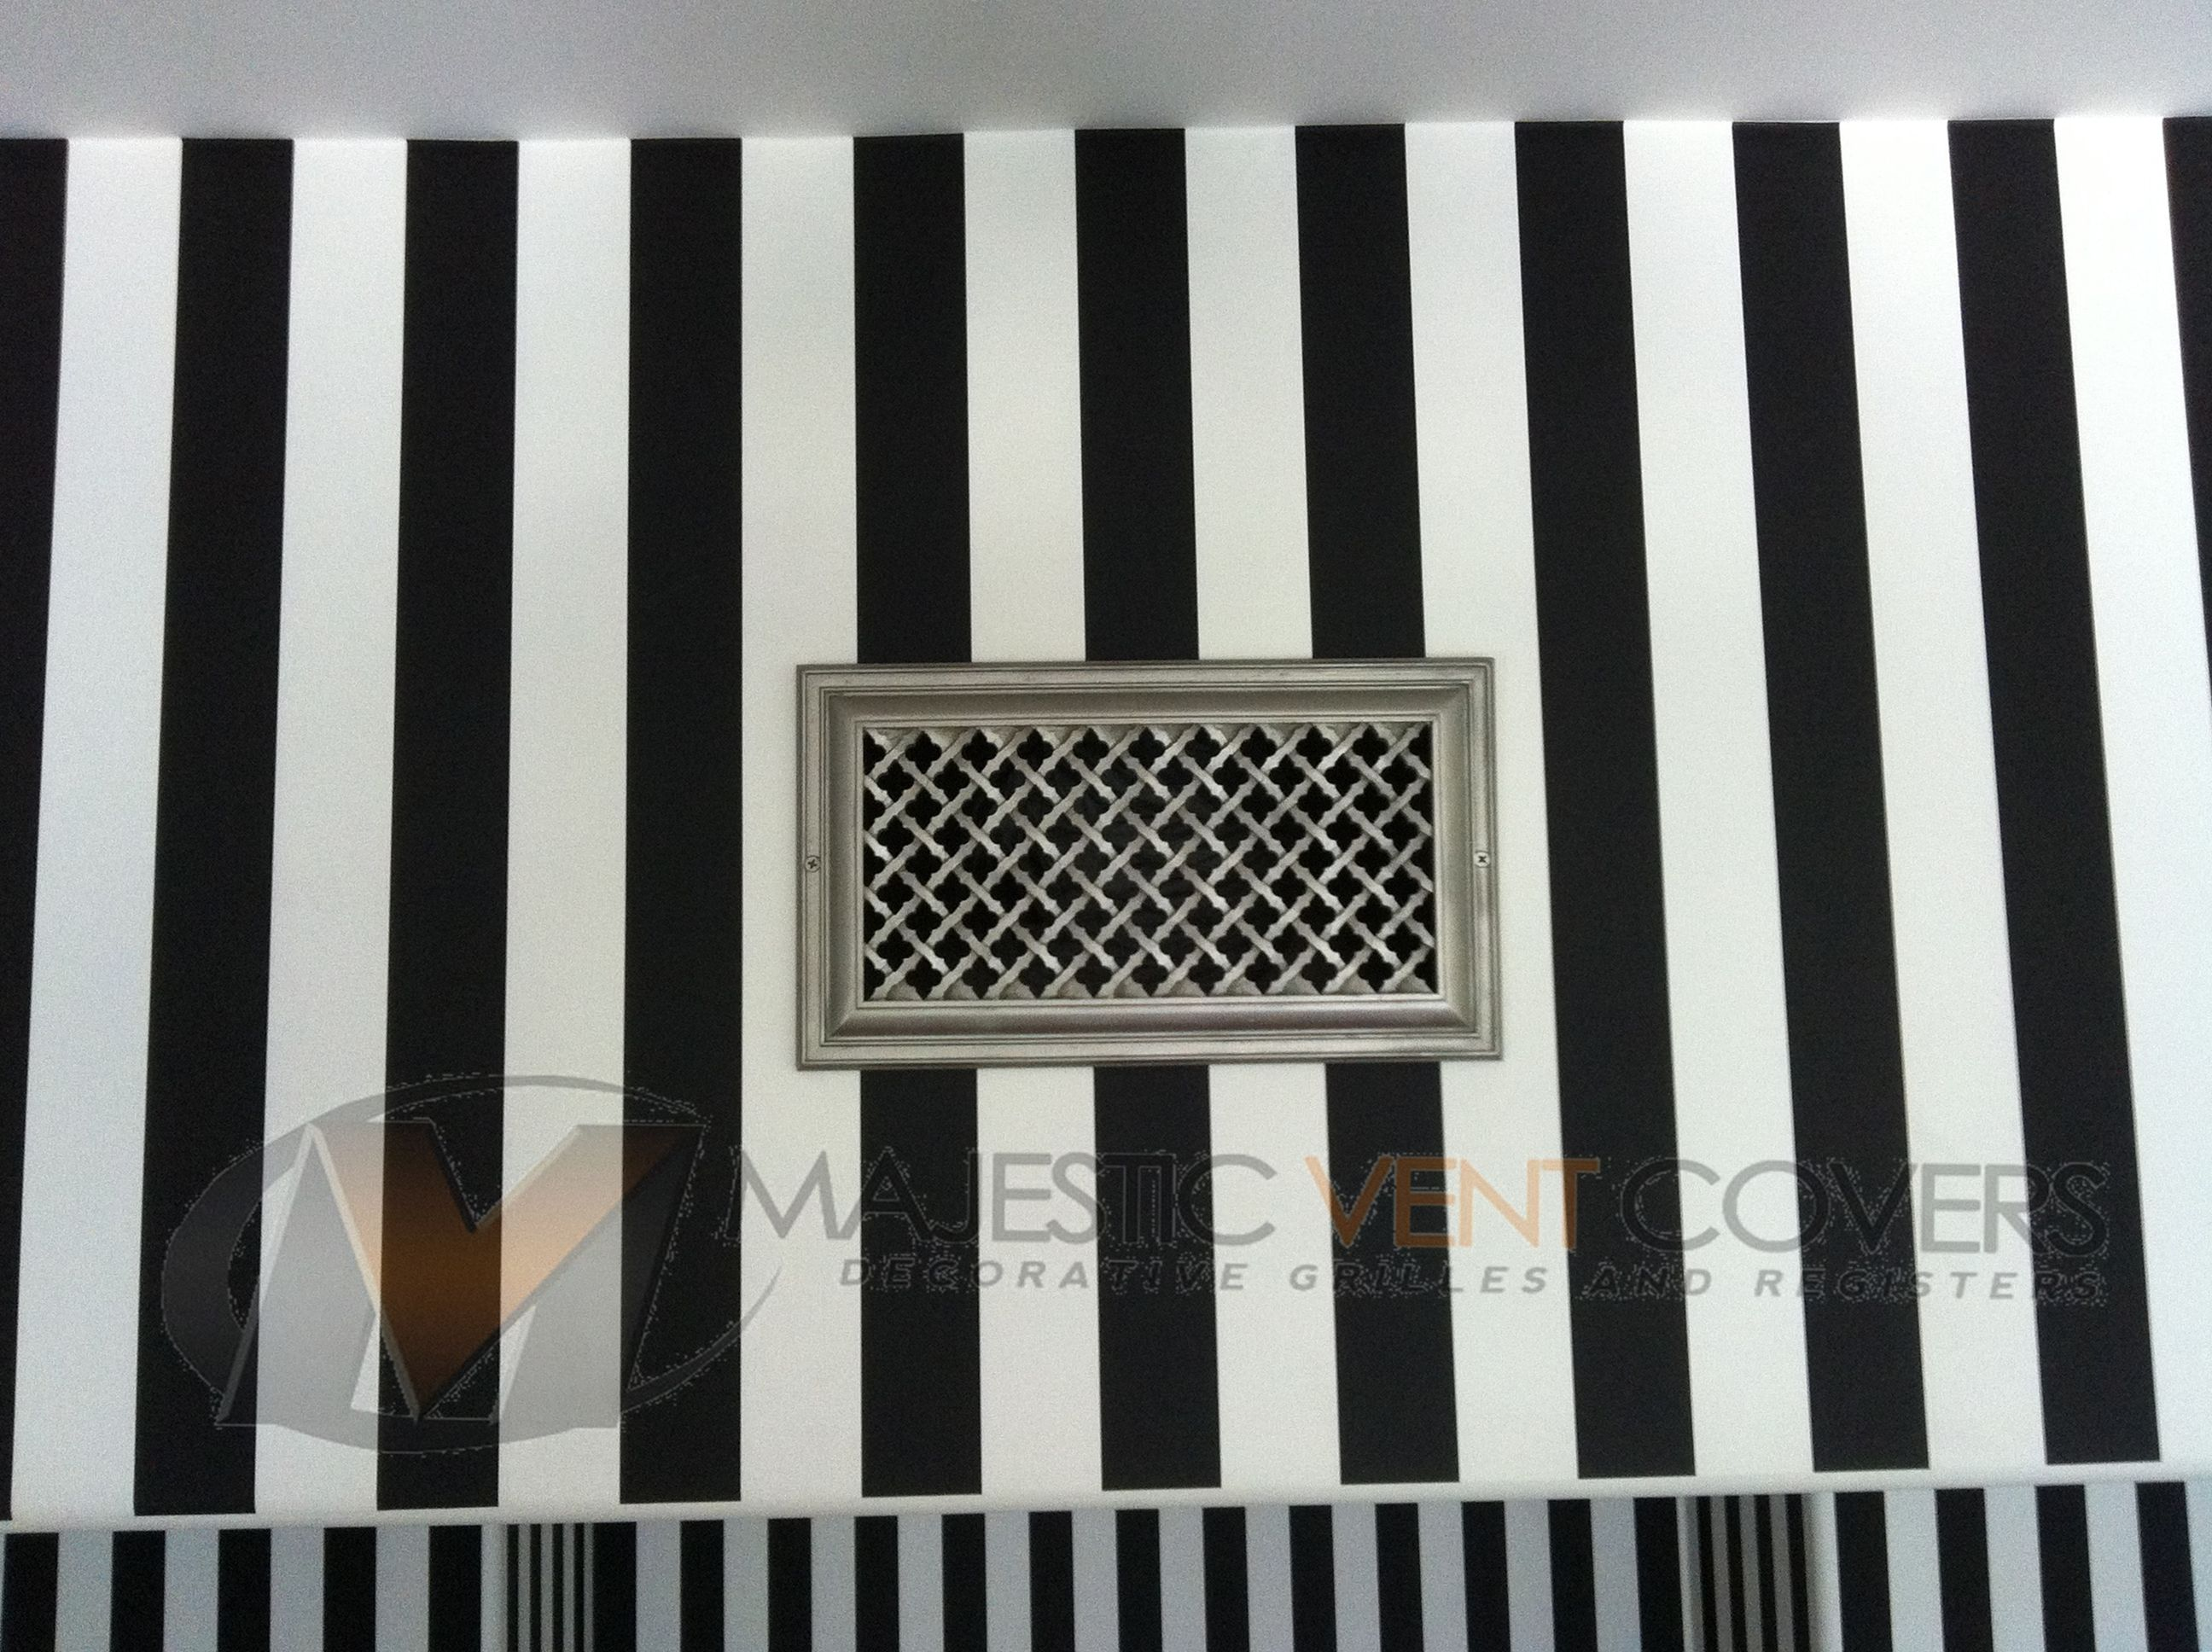 Ribbon grille on black and white striped wallpaper